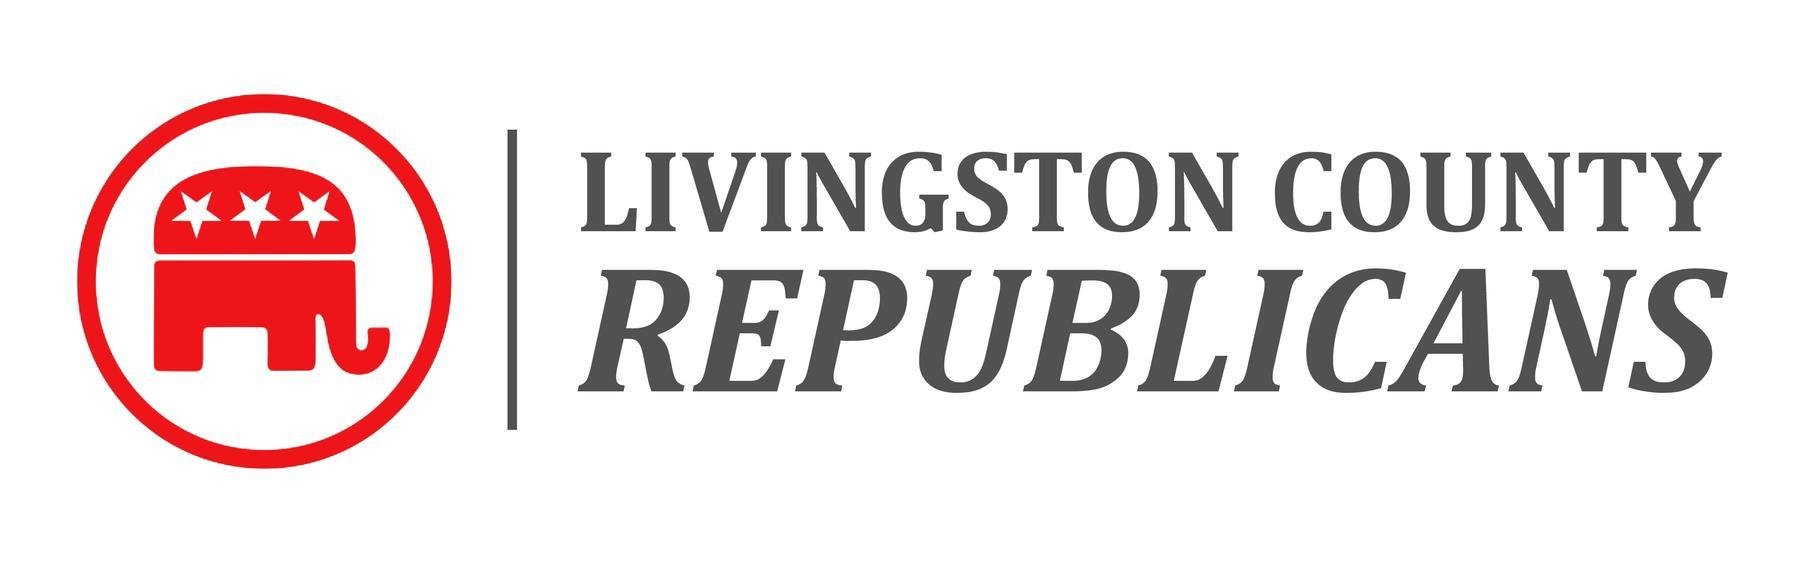 Livingston County Republican Party: General Donation $50